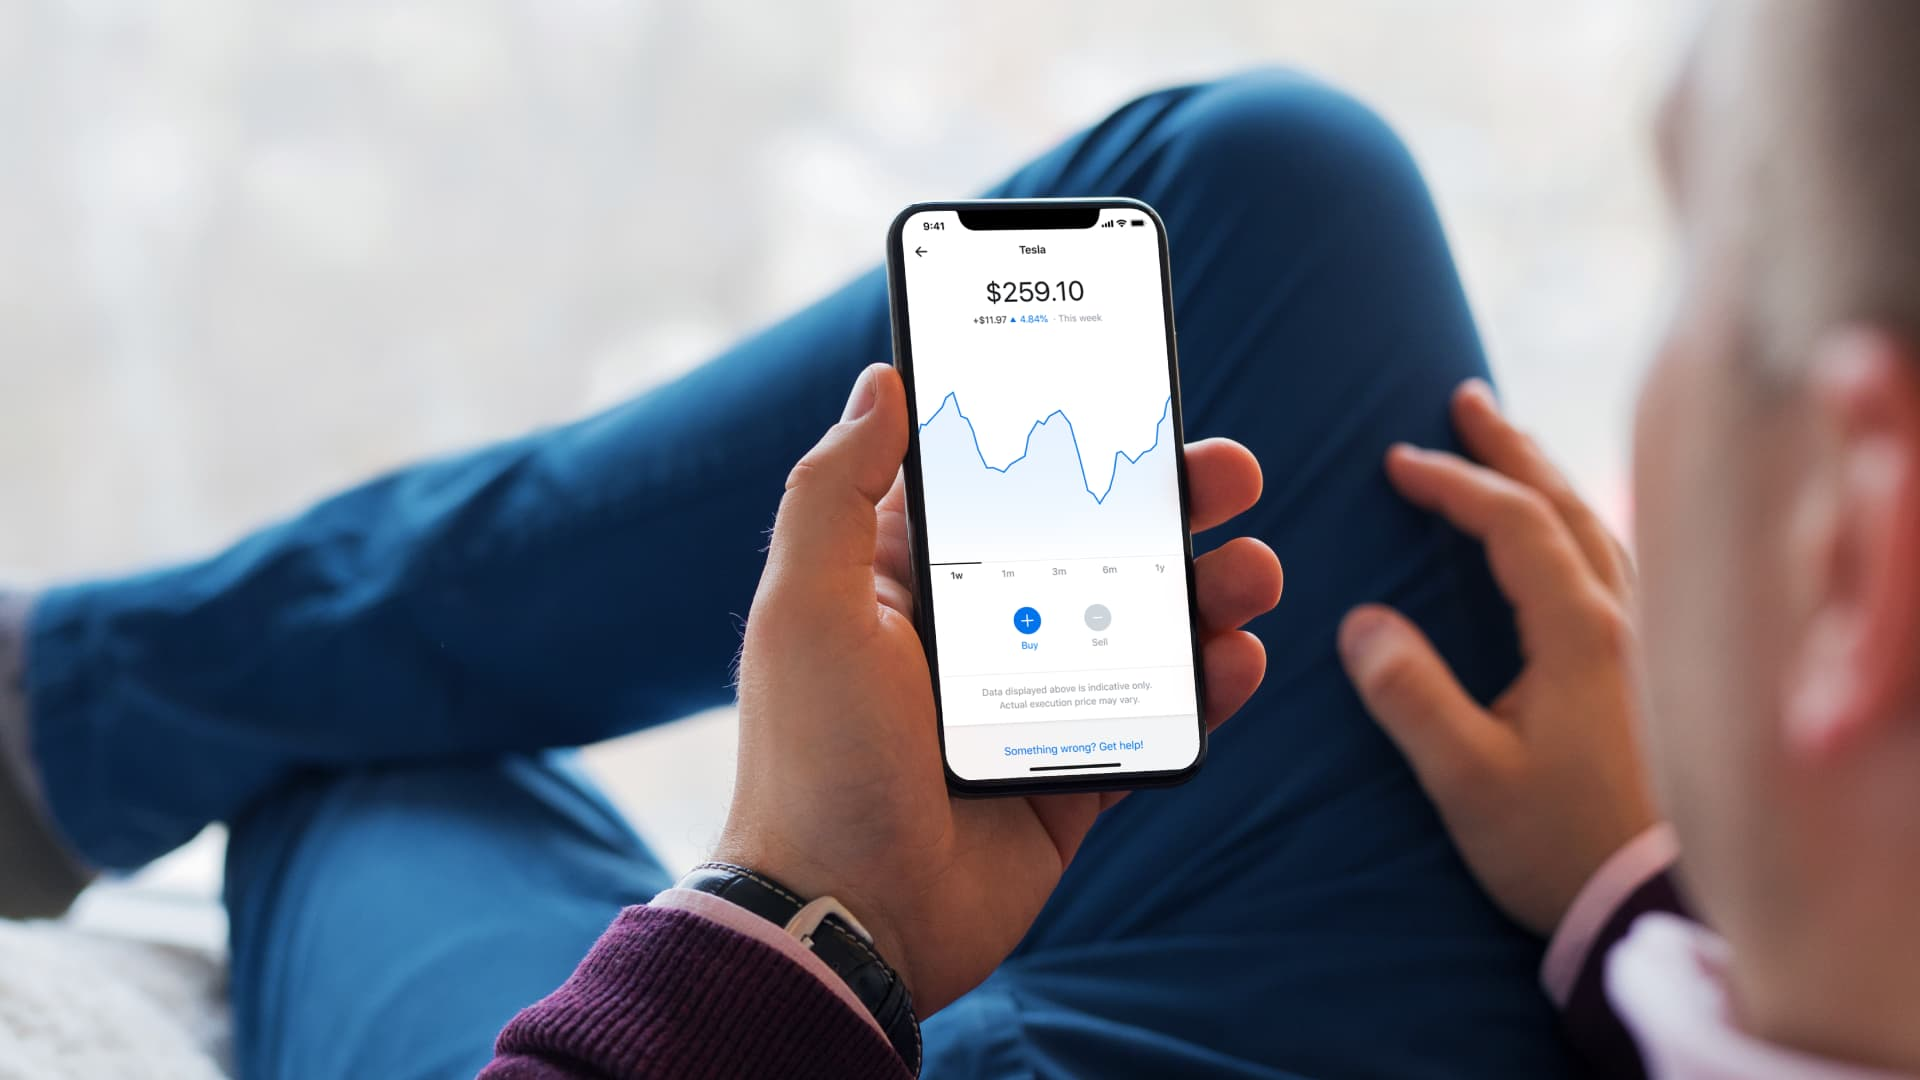 Revolut's trading feature lets users buy or sell popular U.S. stocks including Apple, Tesla and Beyond Meat.